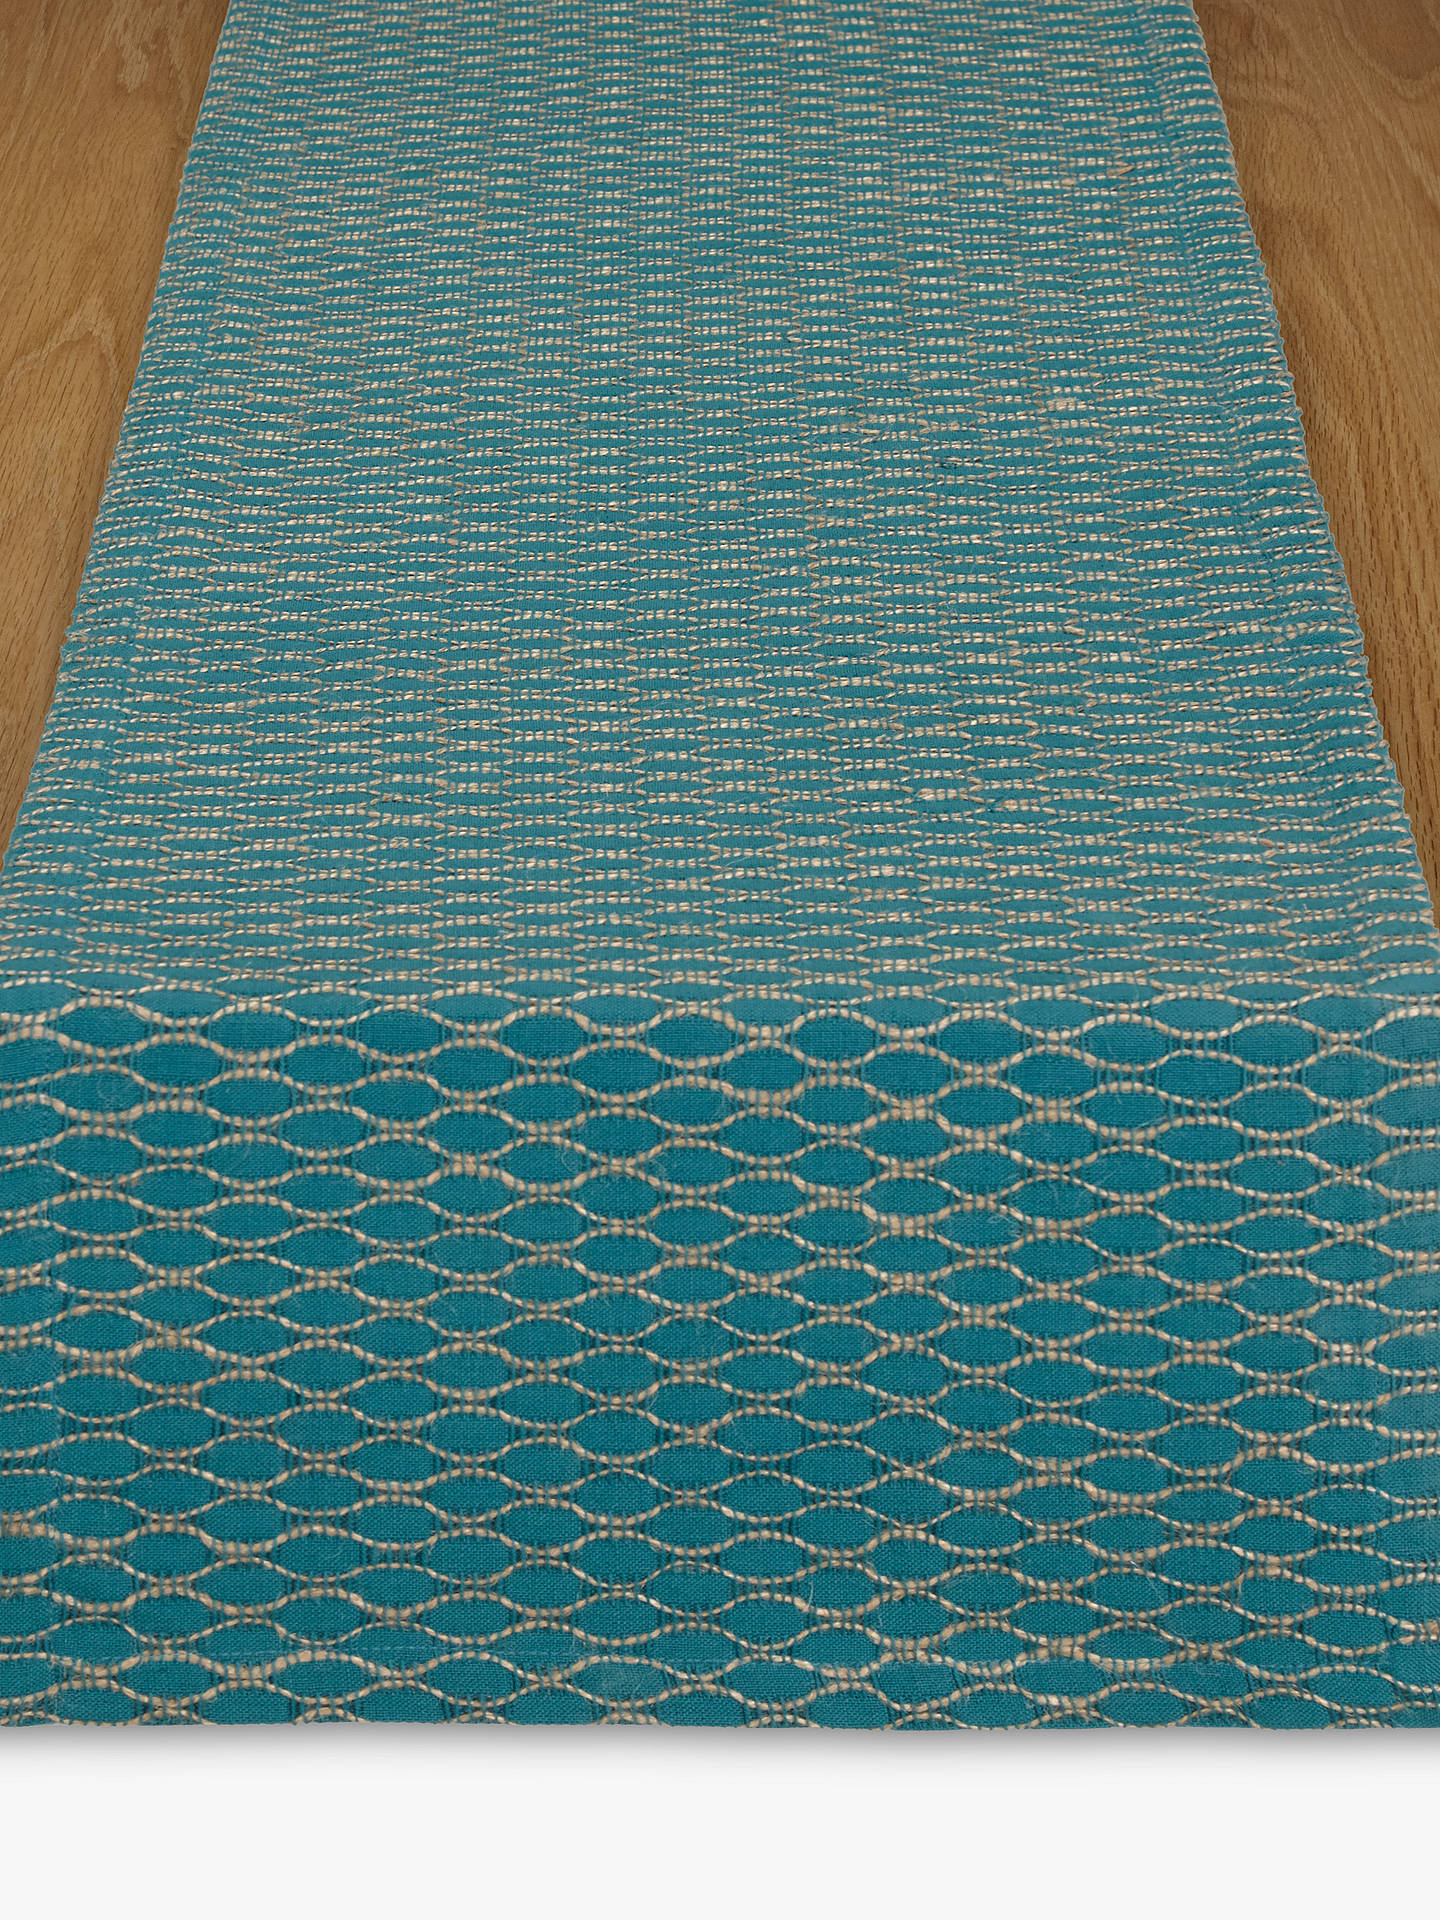 BuyJohn Lewis & Partners Fusion Asian East Table Runner, Teal Online at johnlewis.com